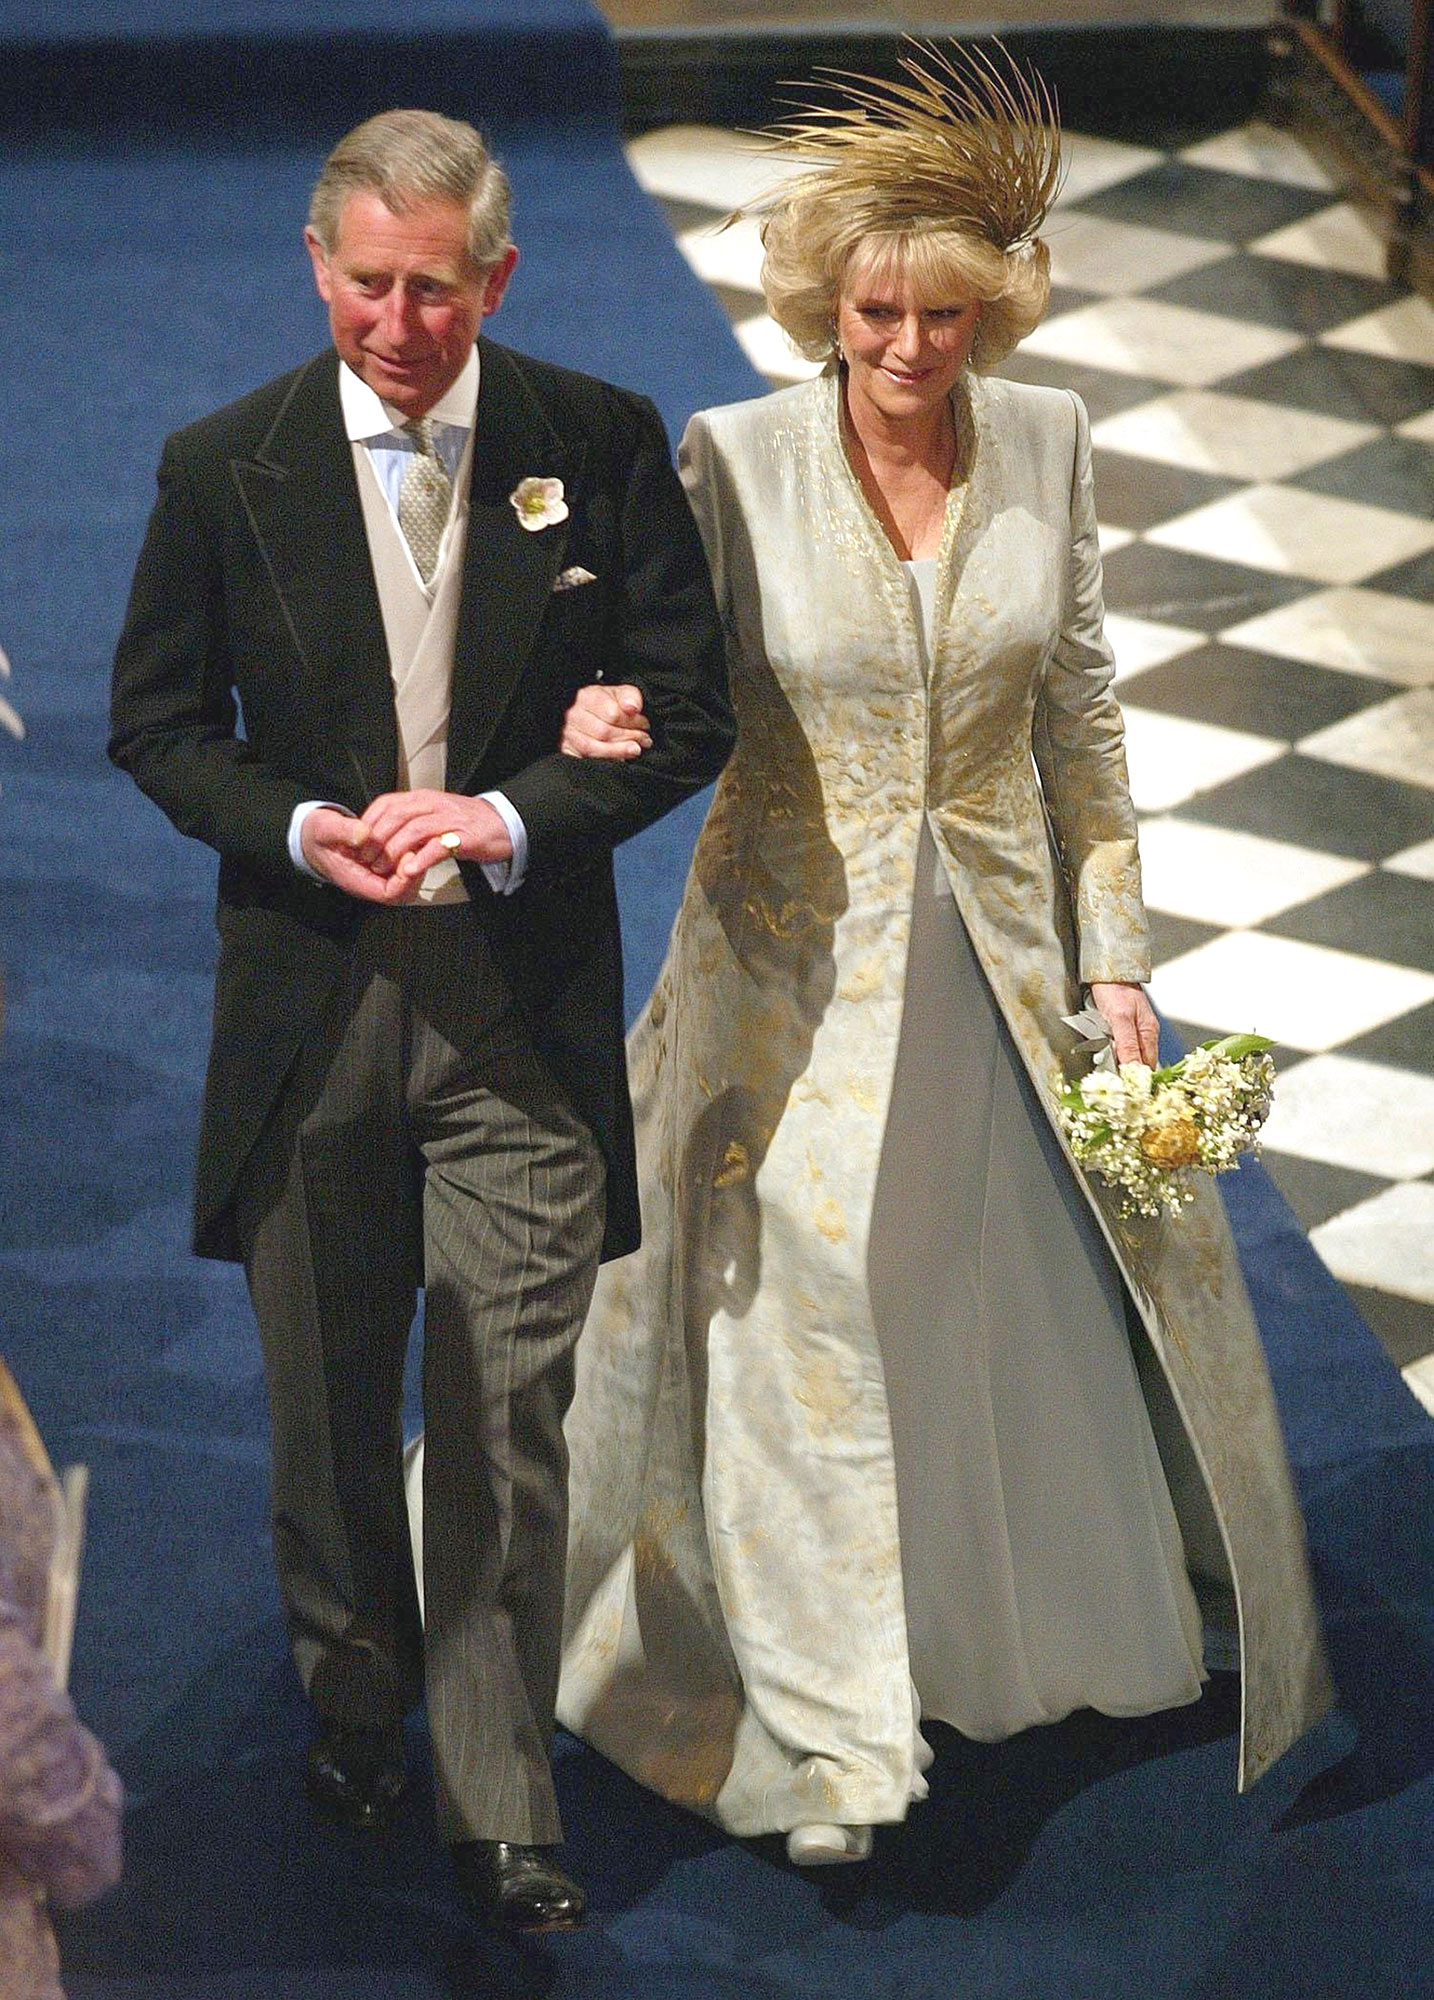 The Royal Wedding of HRH Prince Charles and Mrs. Camilla Parker Bowles - The Blessing Ceremony - Inside